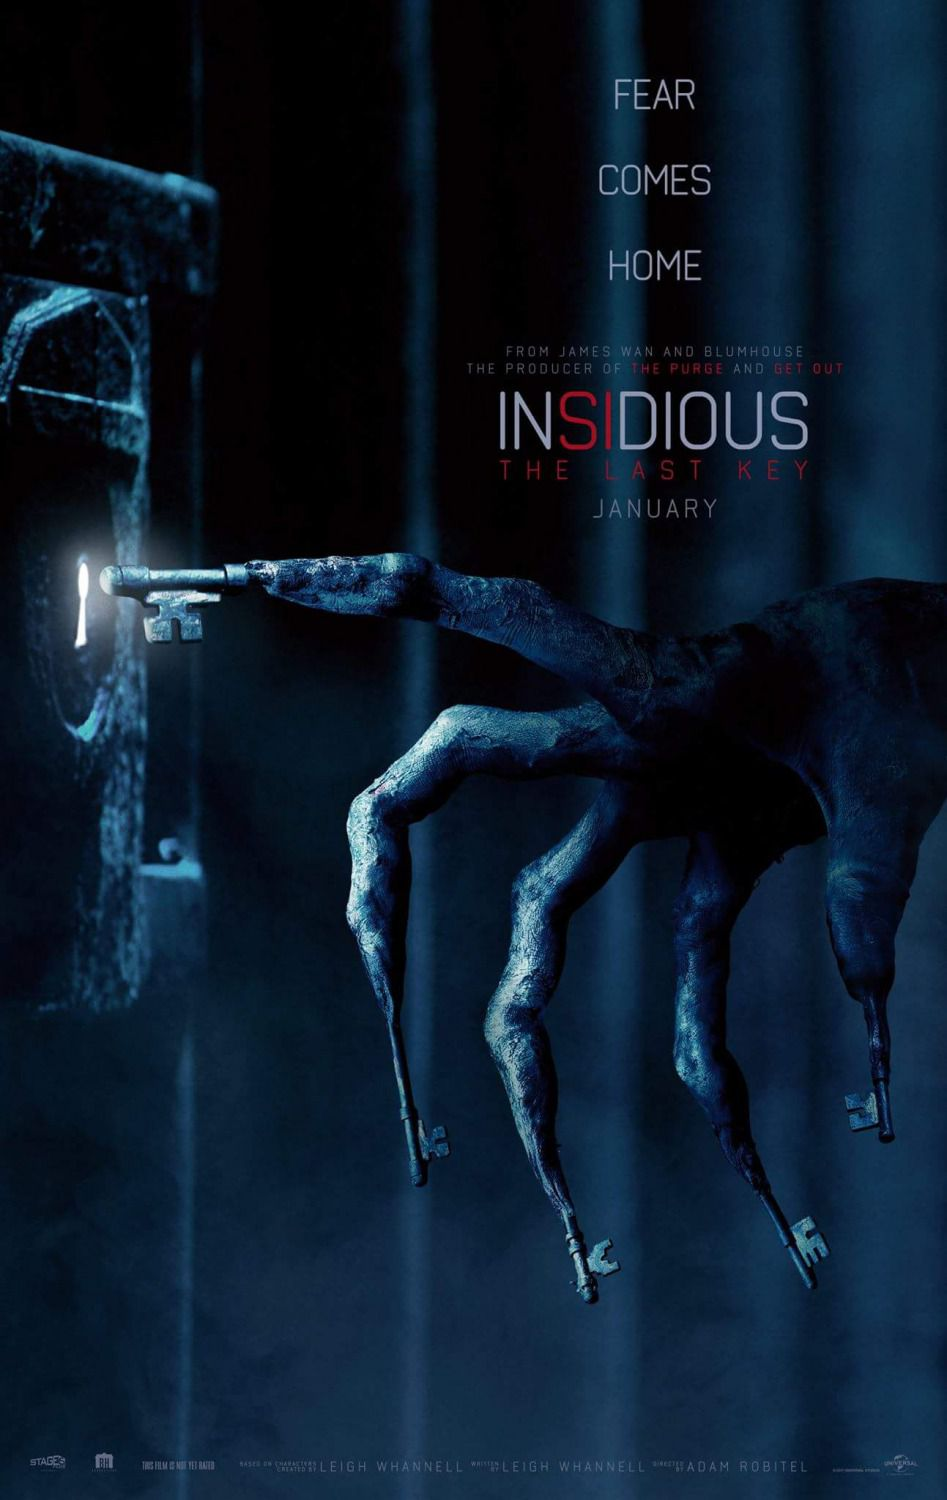 Insidious chapter 4 the last key - film horror poster